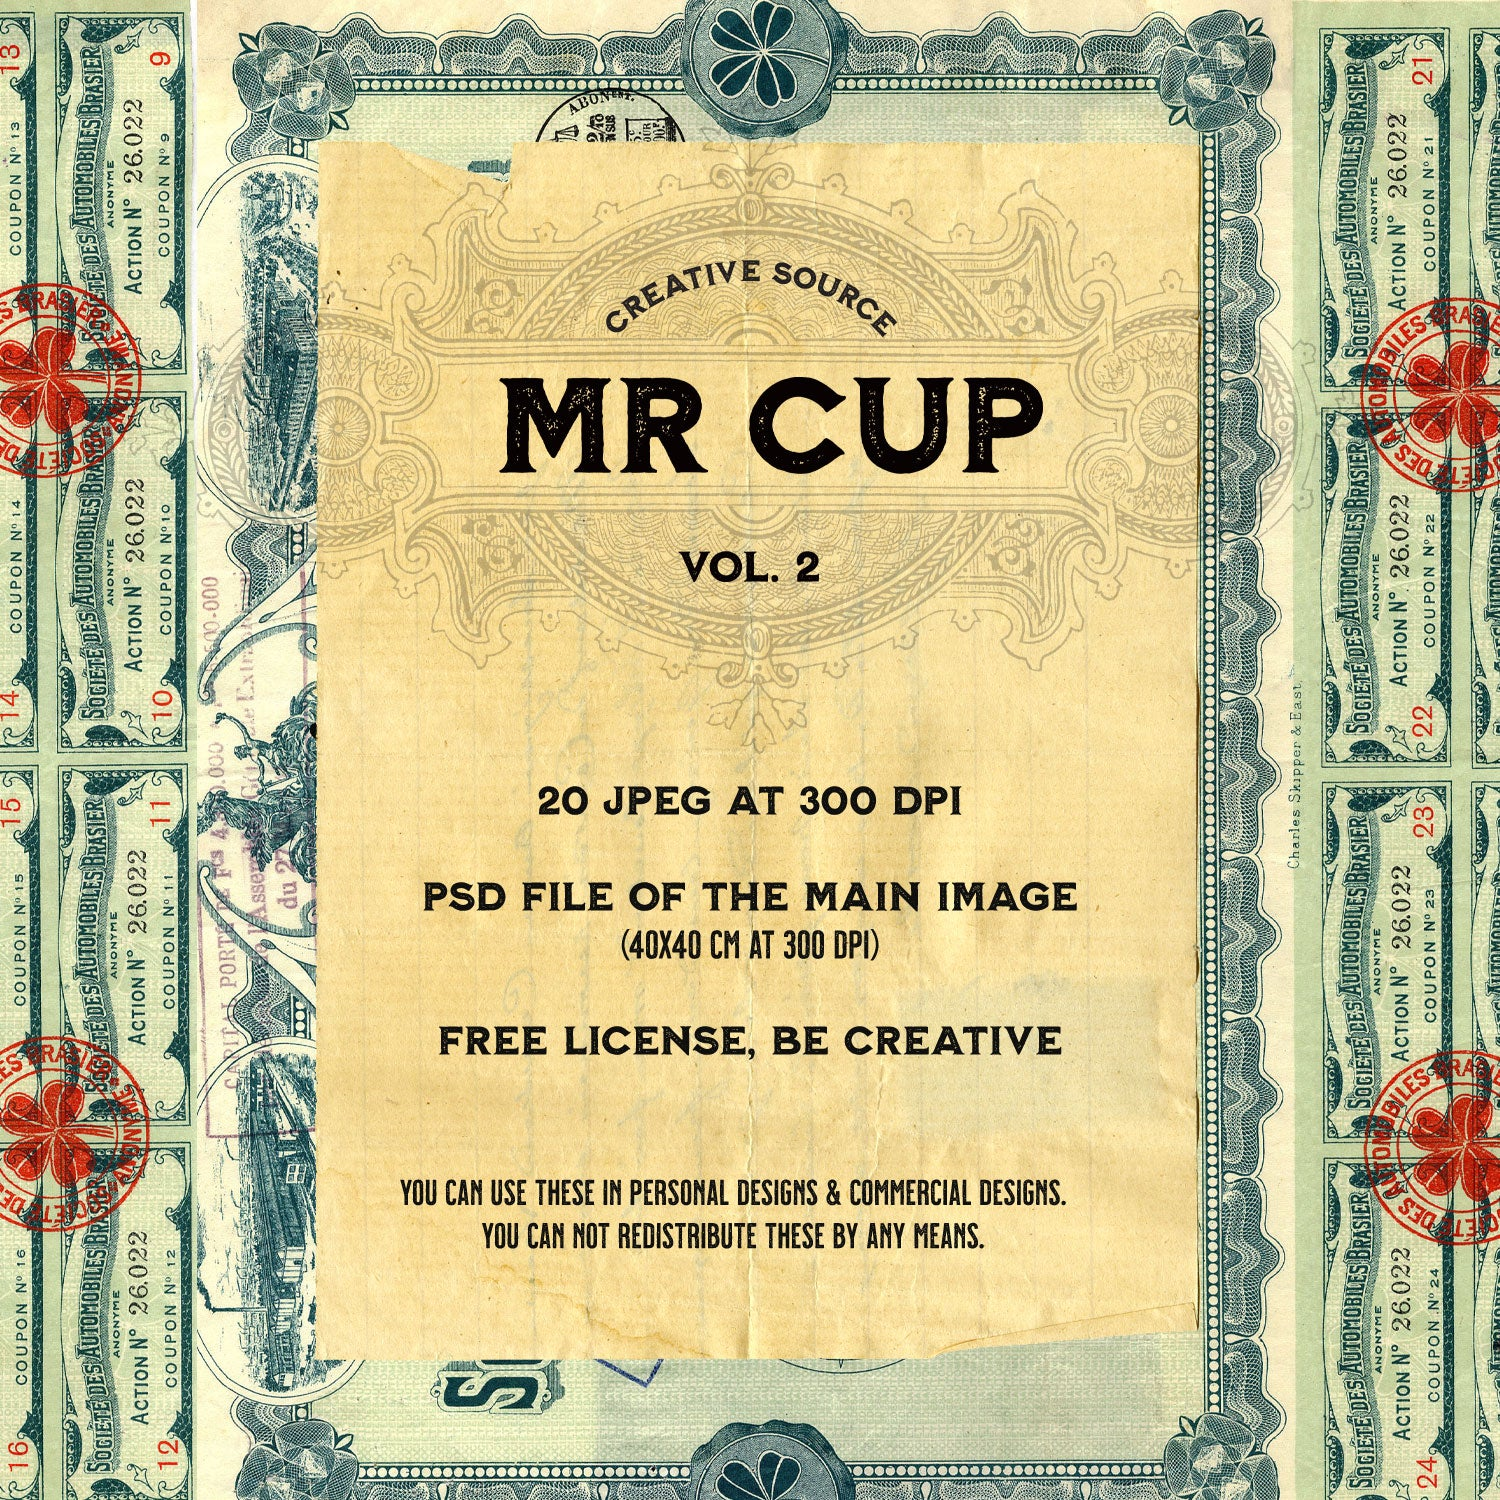 Mr Cup Creative Source . Vol 2 - MR CUP